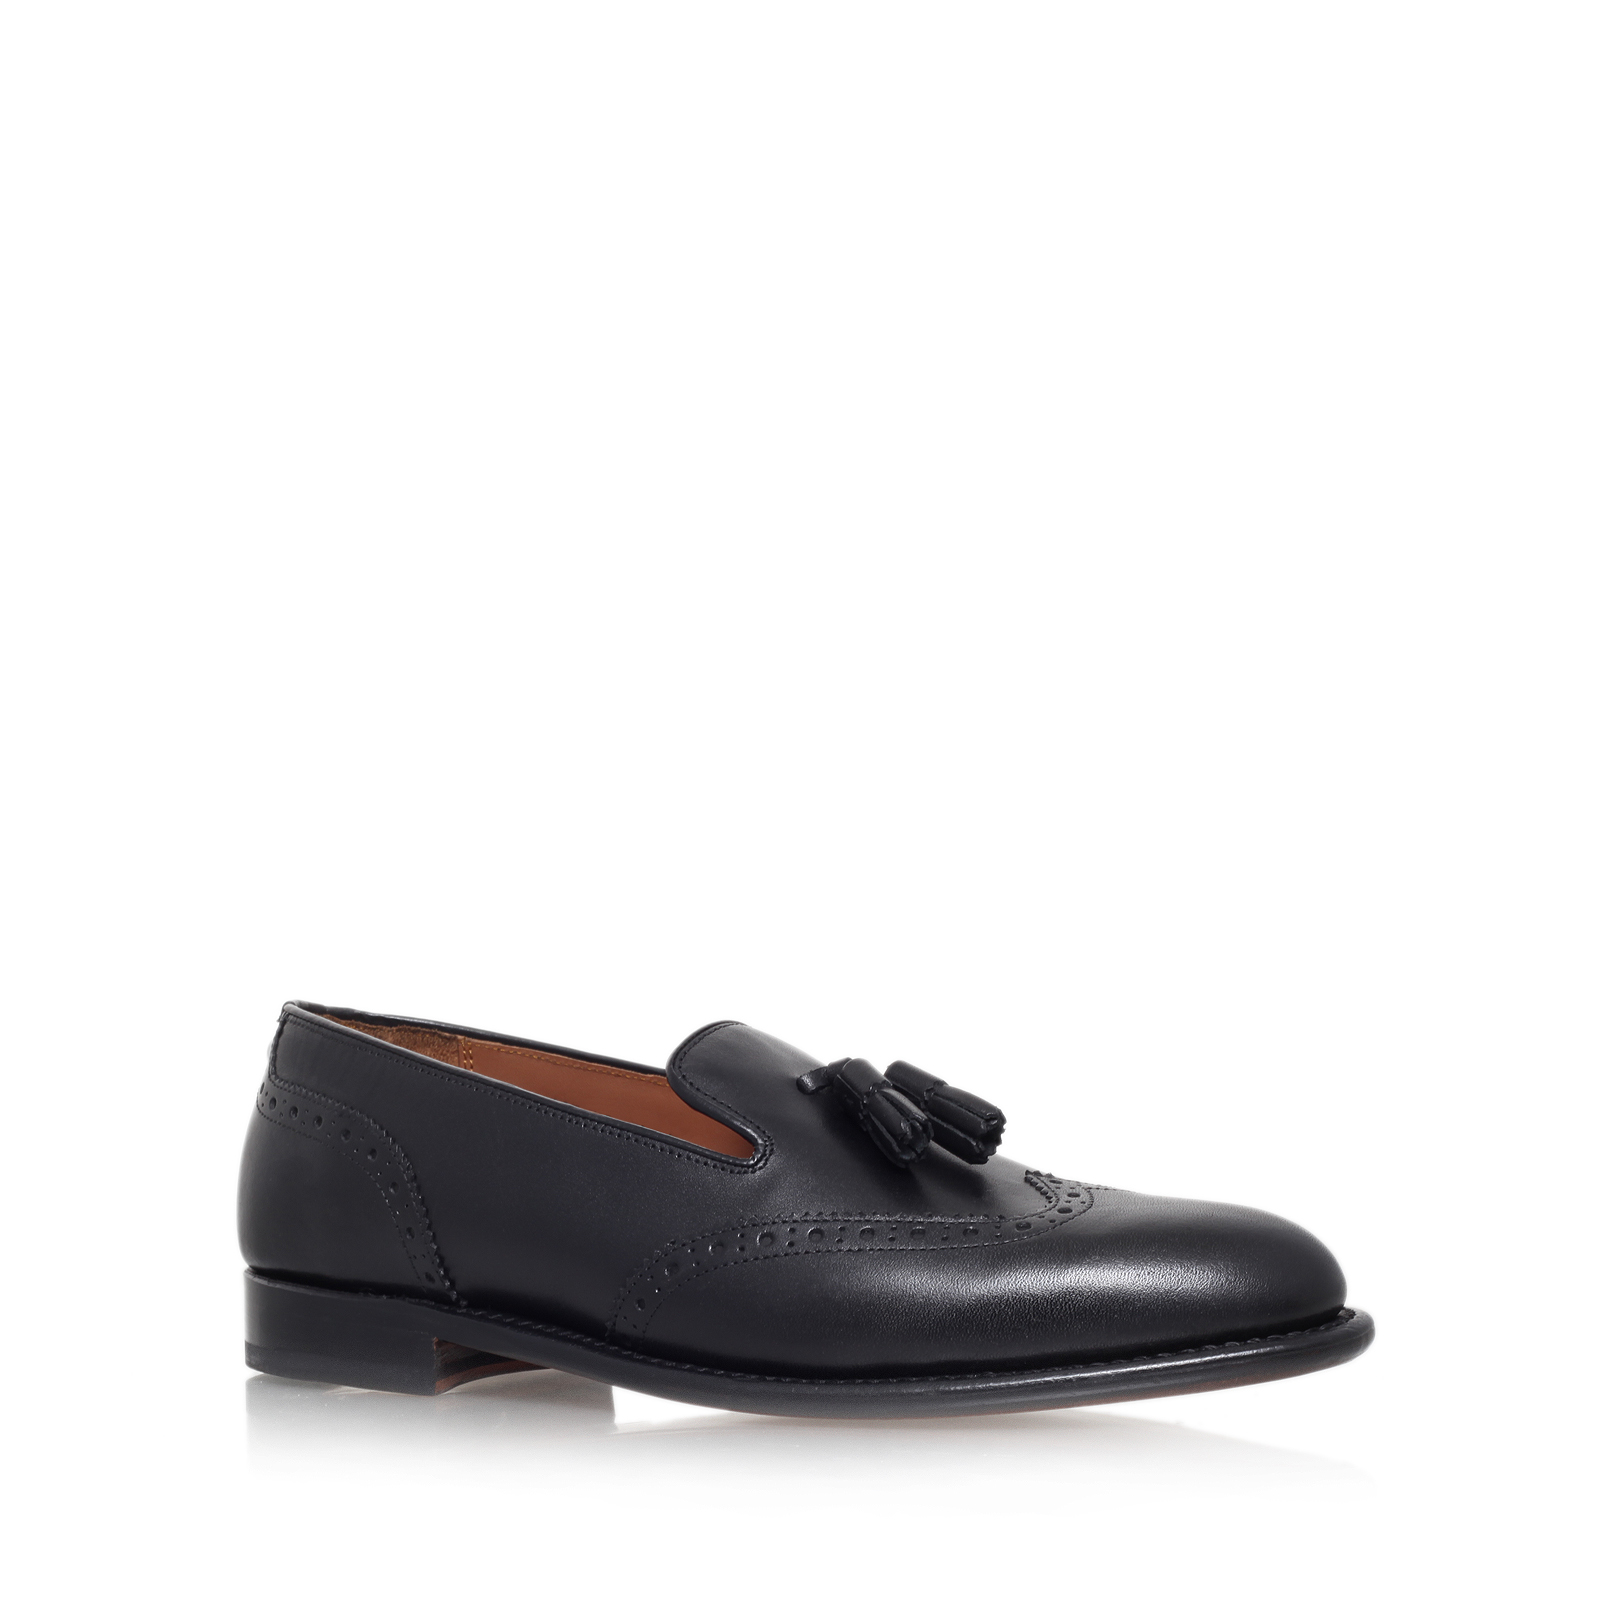 MONTY WC TASSEL LOAFER